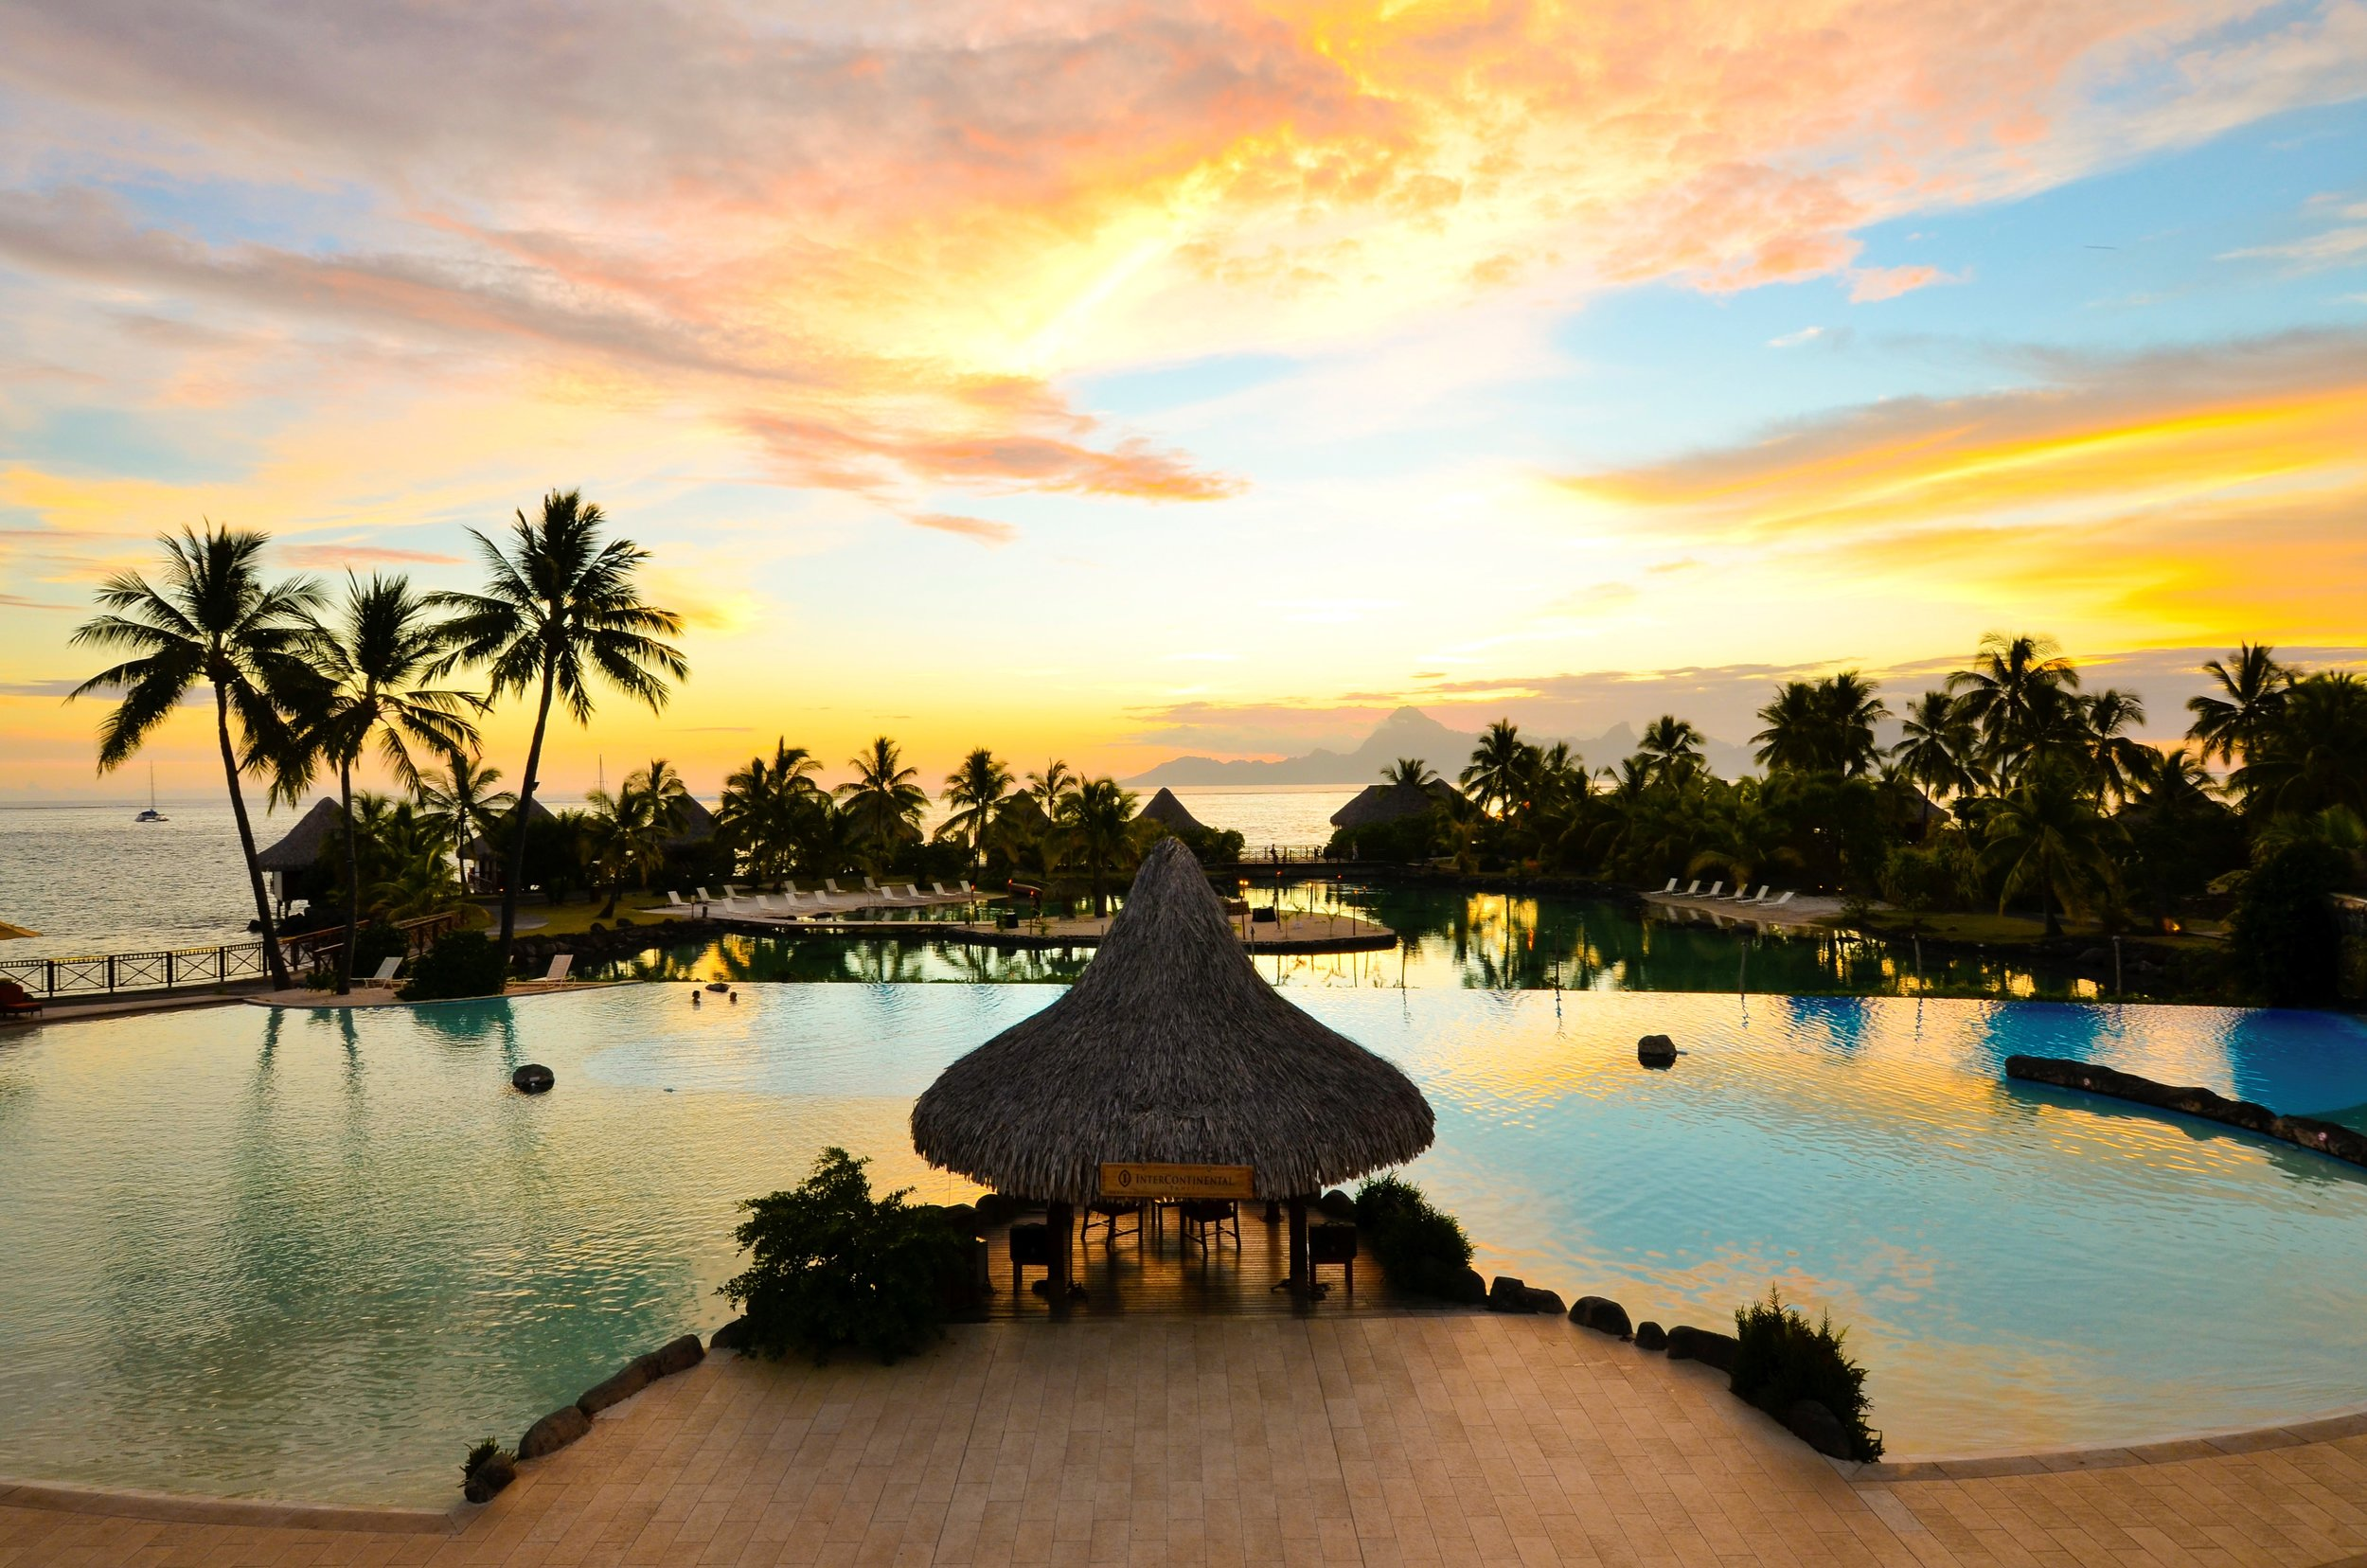 You can relax along a pool or a lagoon in many of the islands